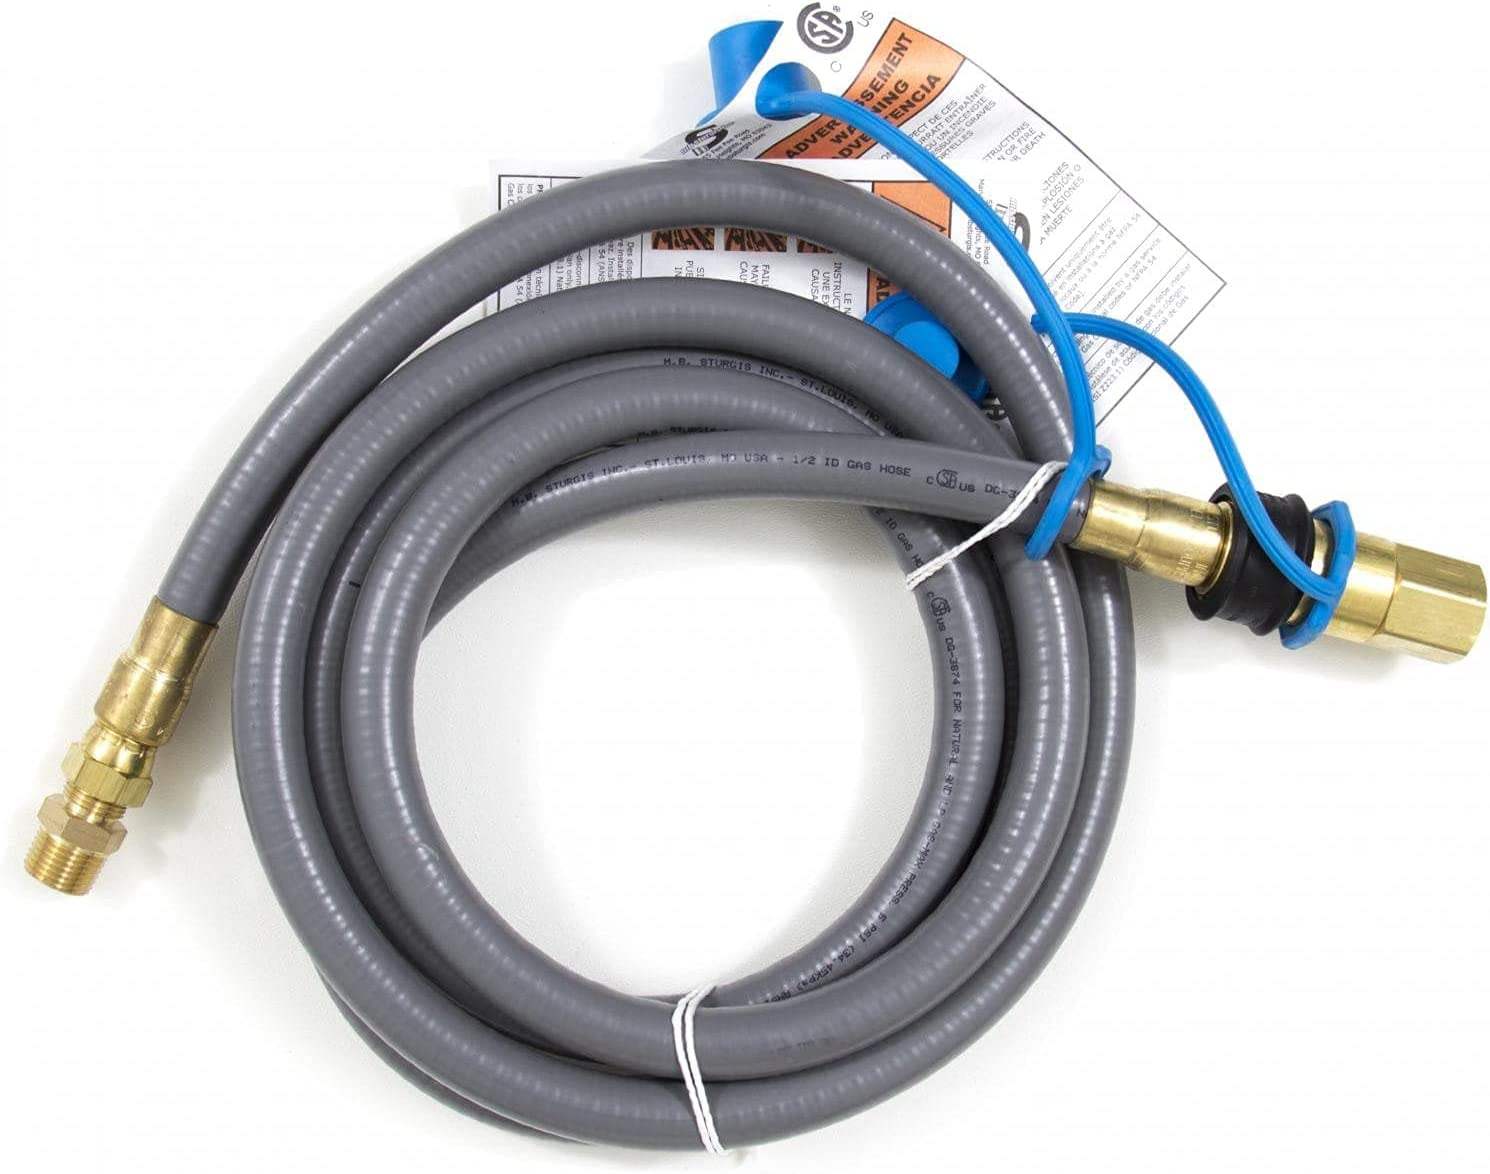 NEW before selling Blaze 10 Ft. Natural Gas Bulk Propane Quick - Disconnect Hose Max 79% OFF W